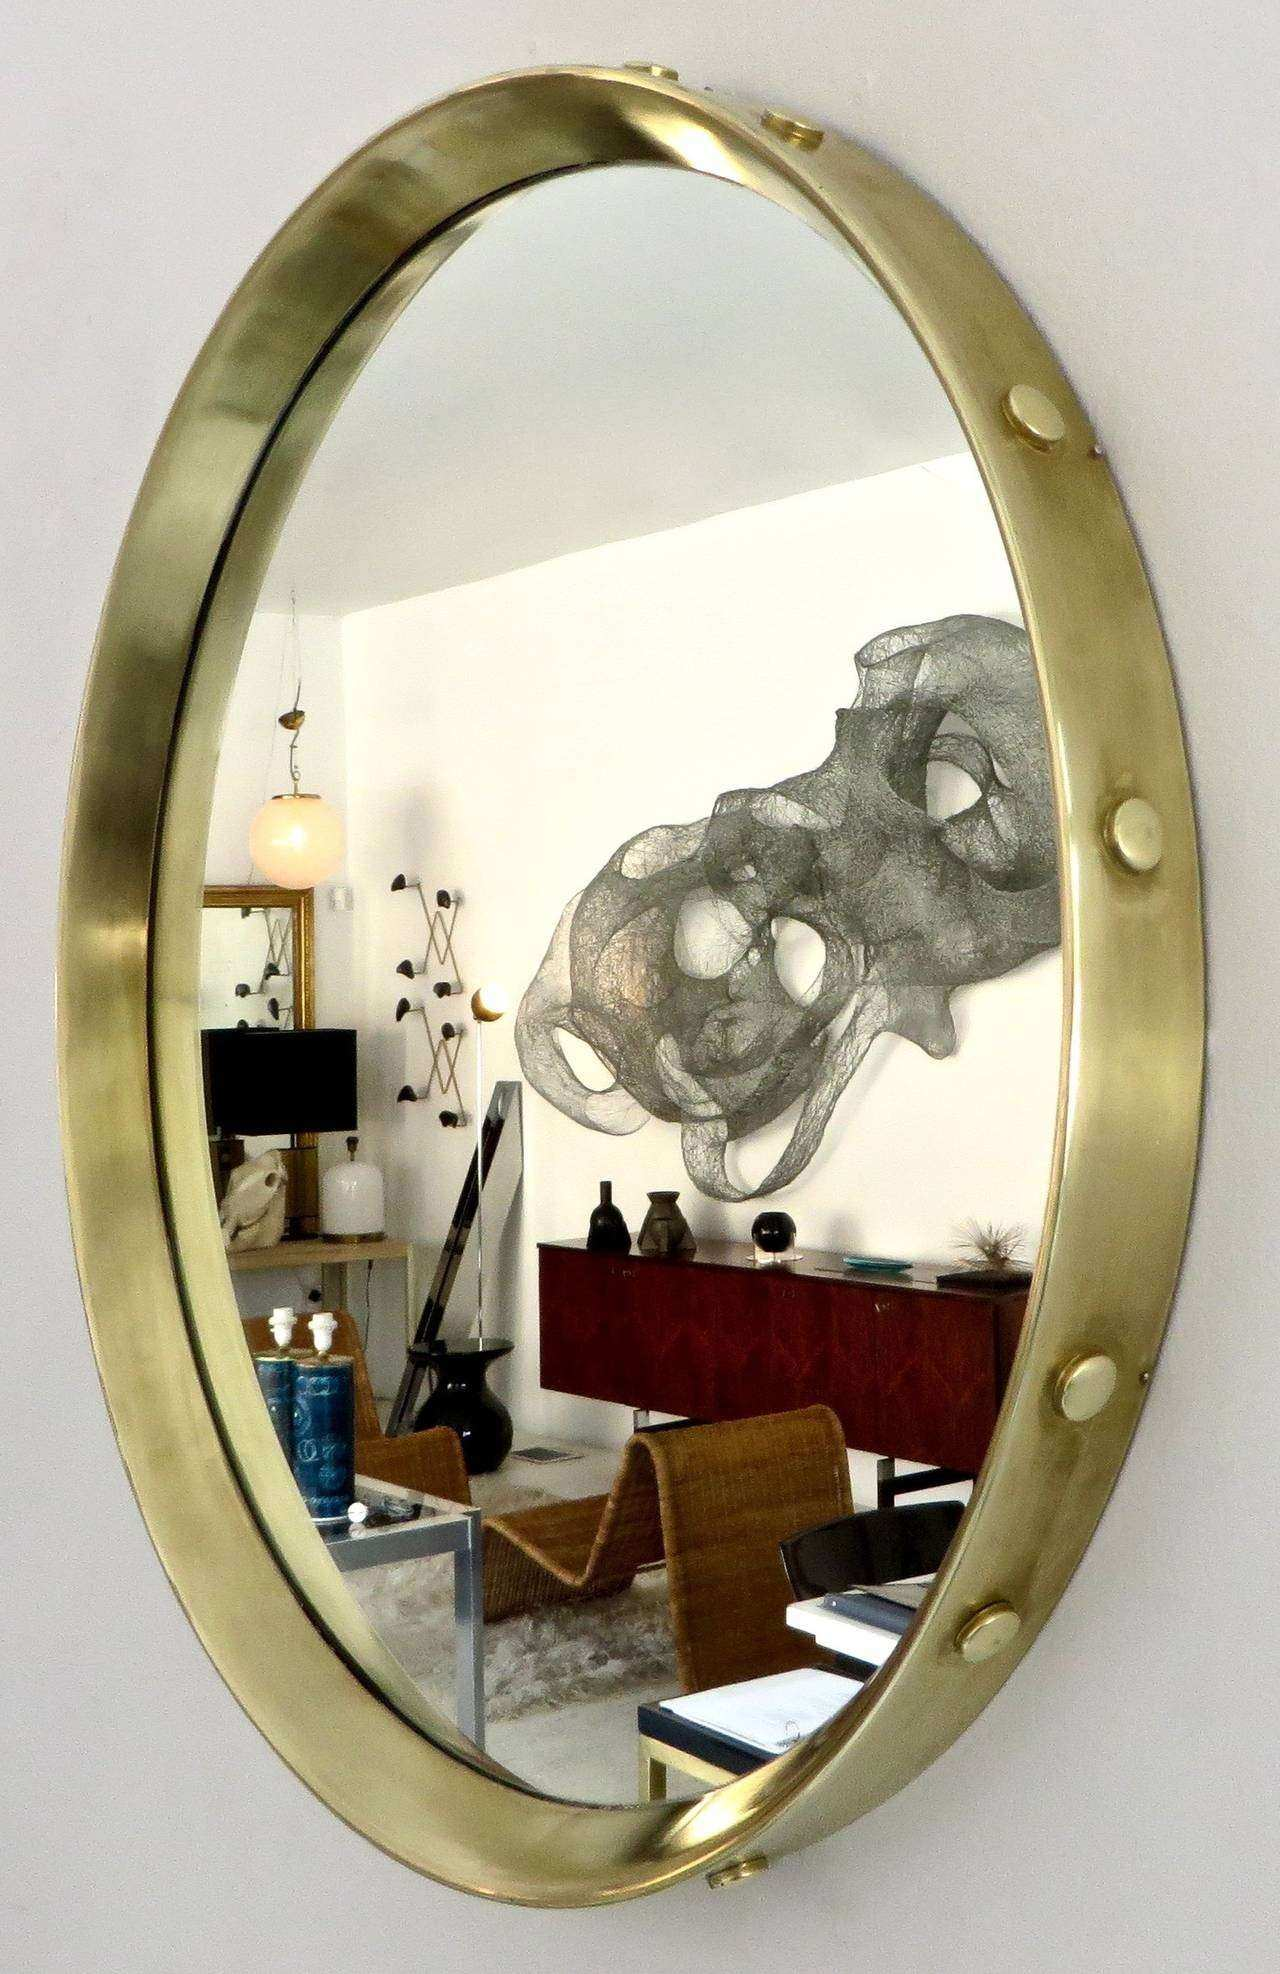 Italian Round Brass Framed Mirror with Decorative Buttons